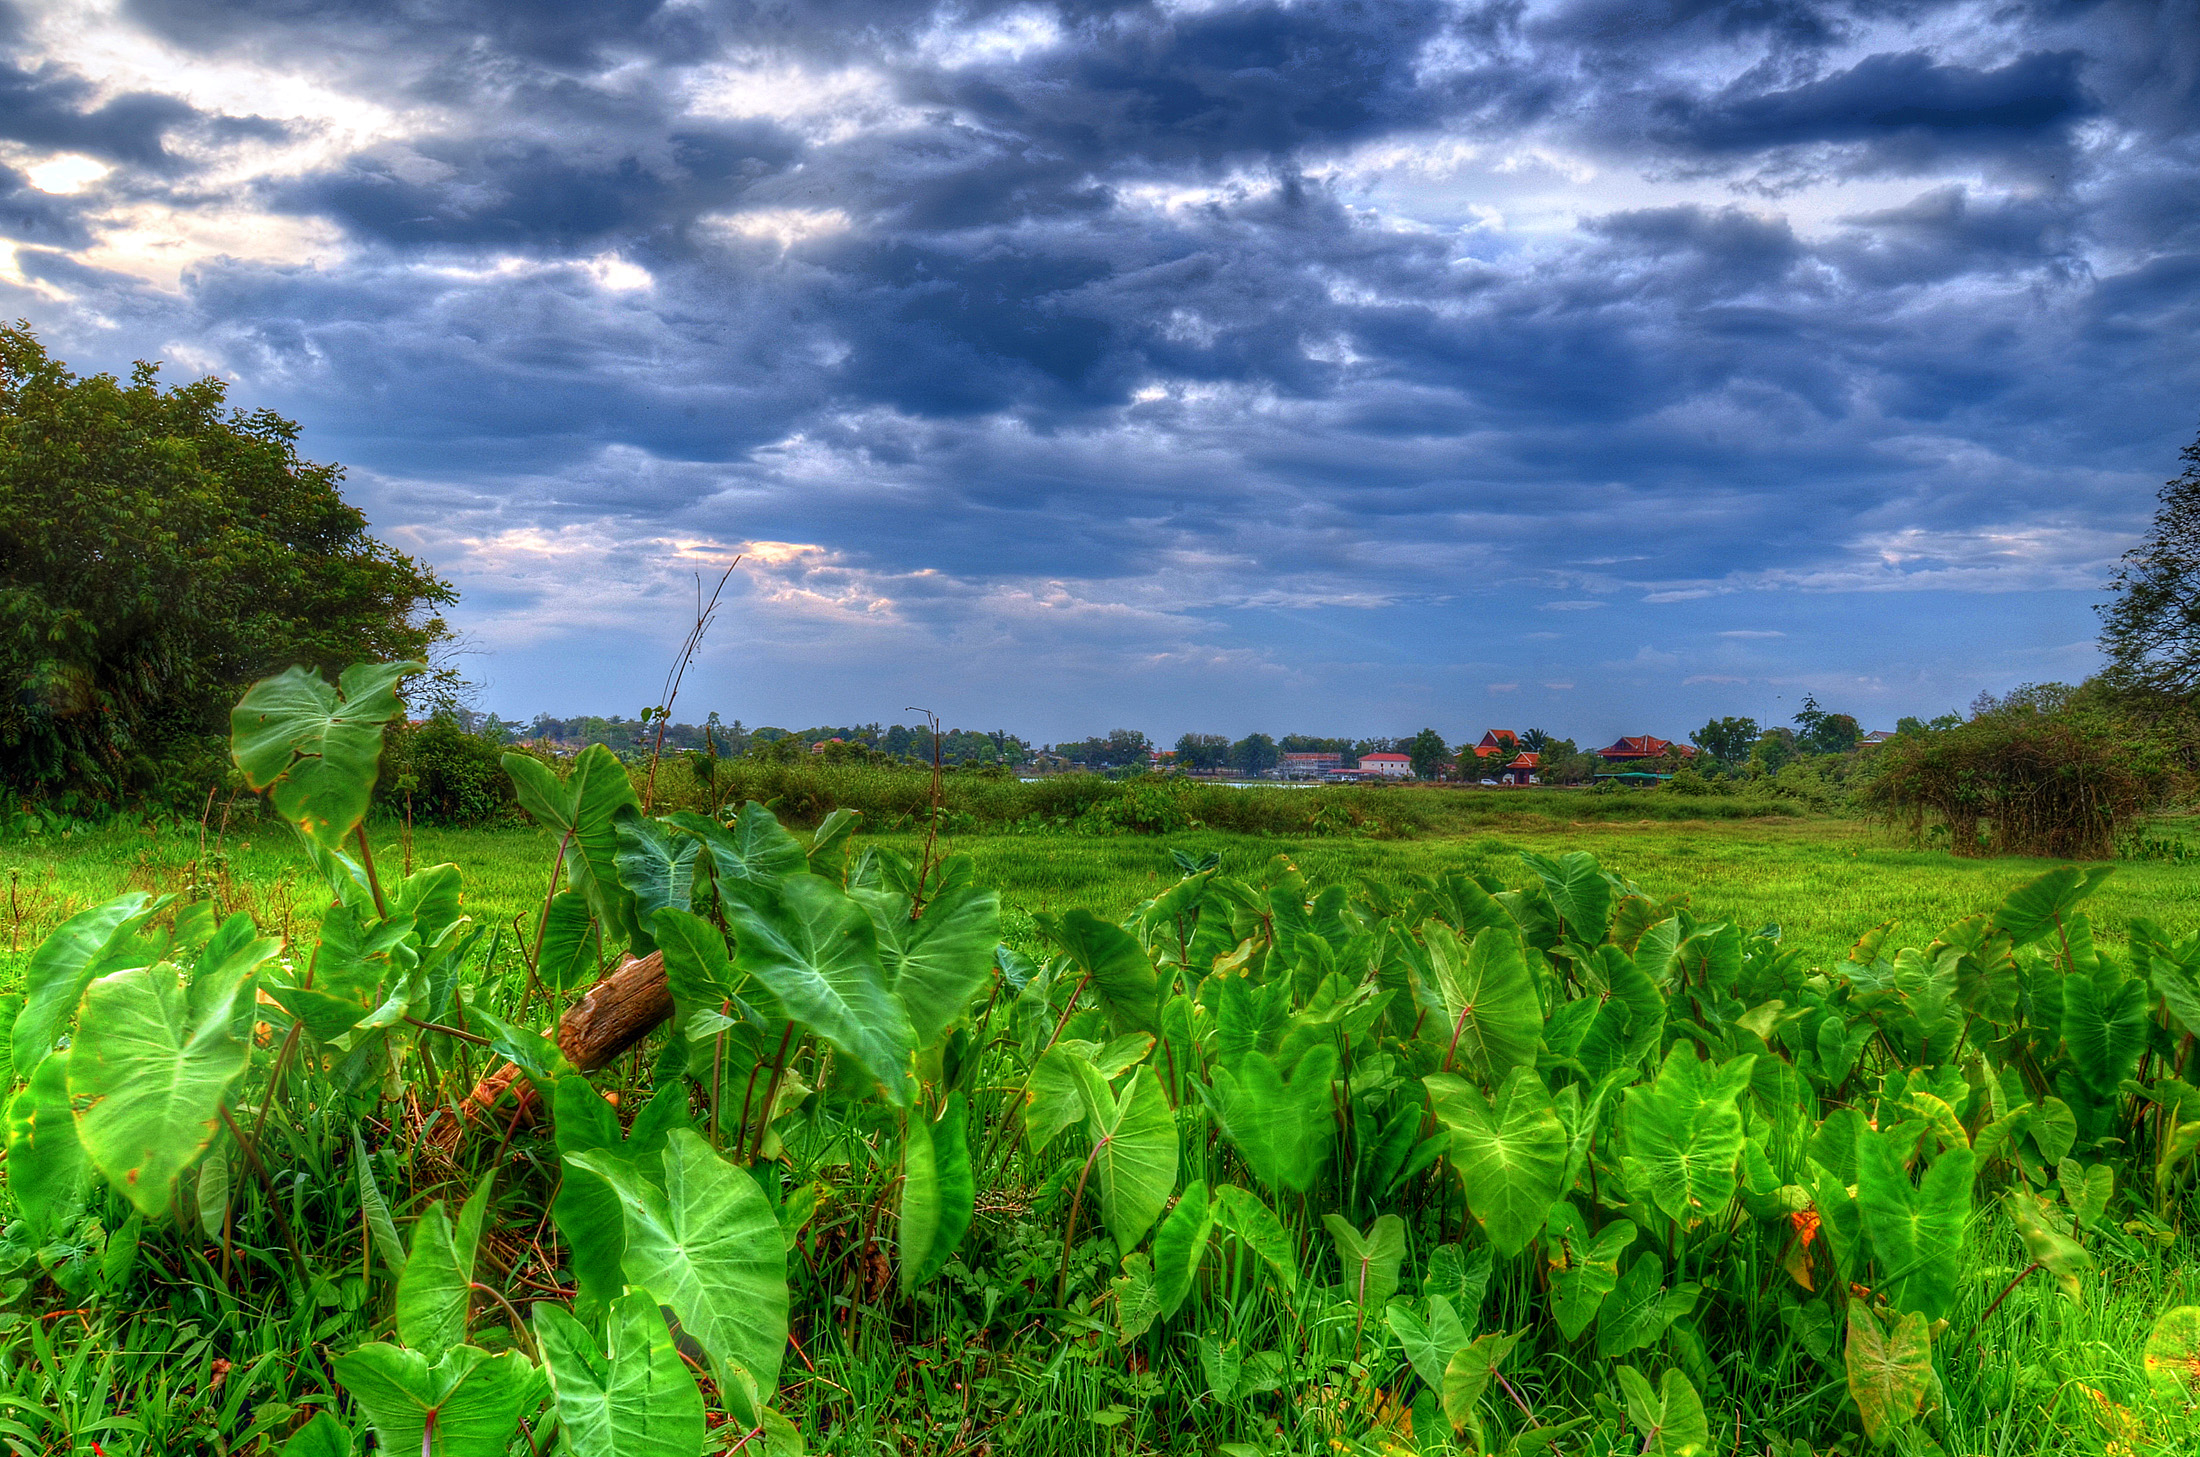 the post-stormy evening sky over  taro plants